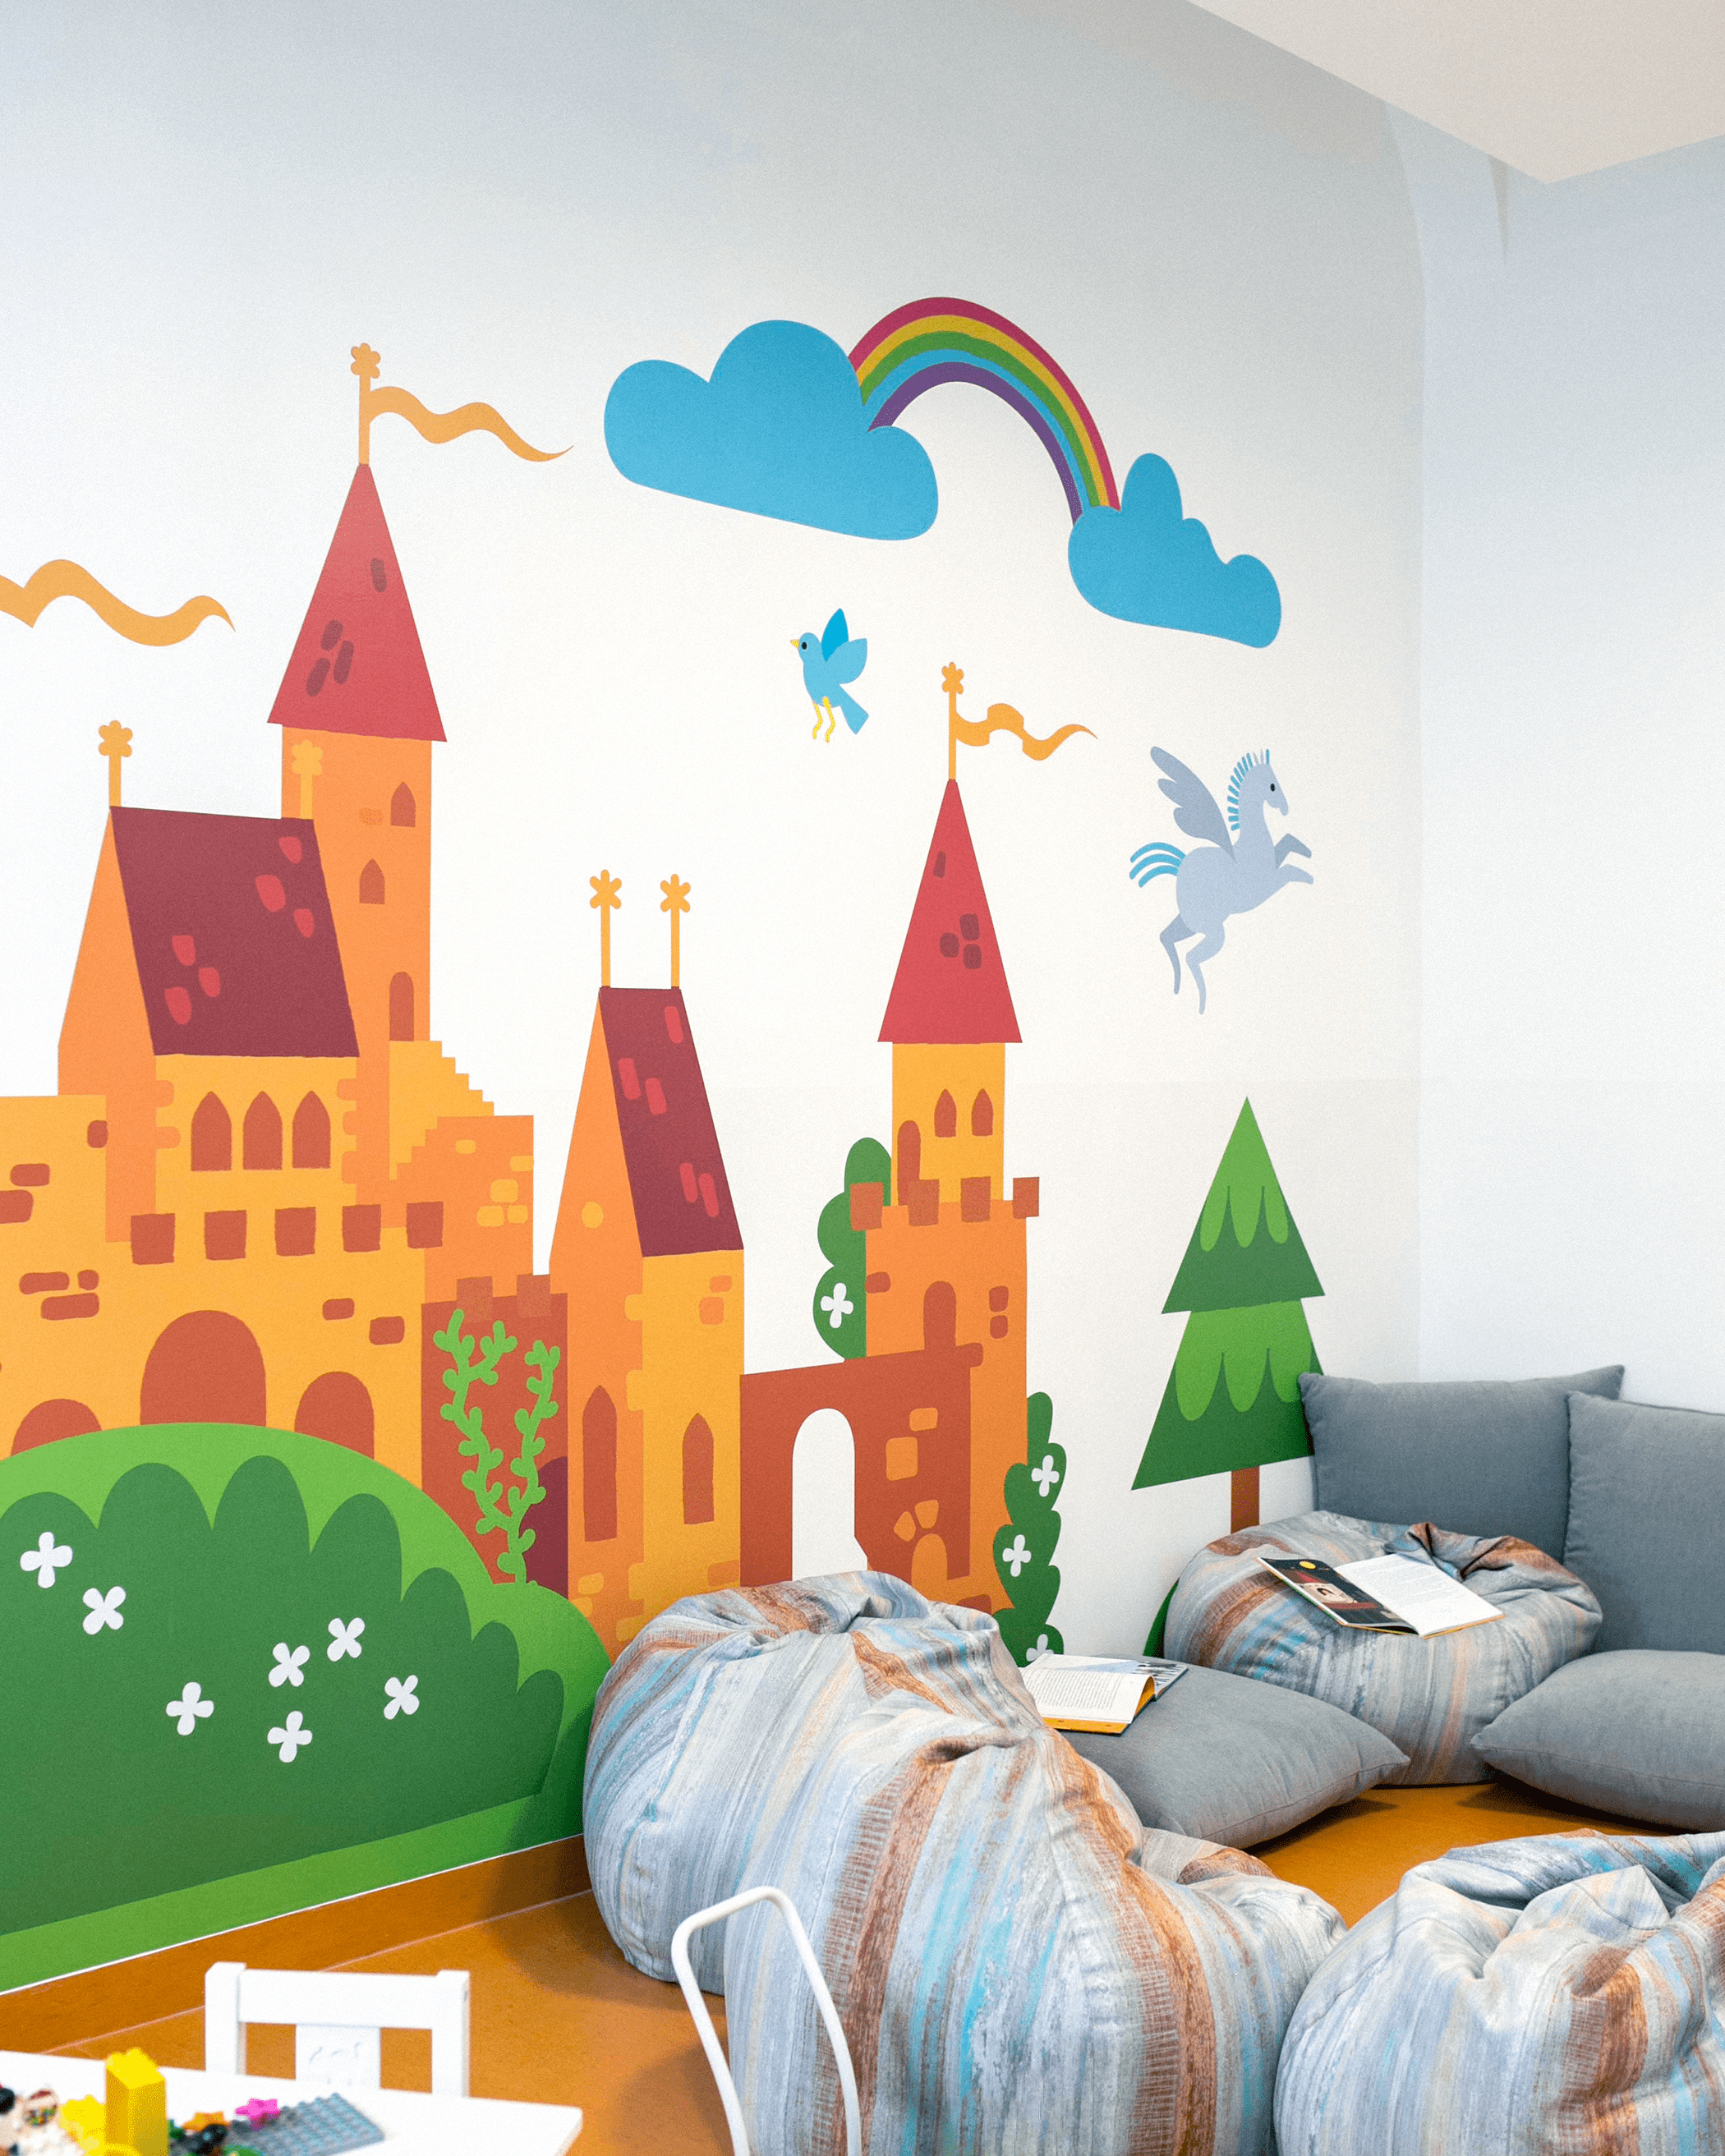 Wall decor - fairytale castle